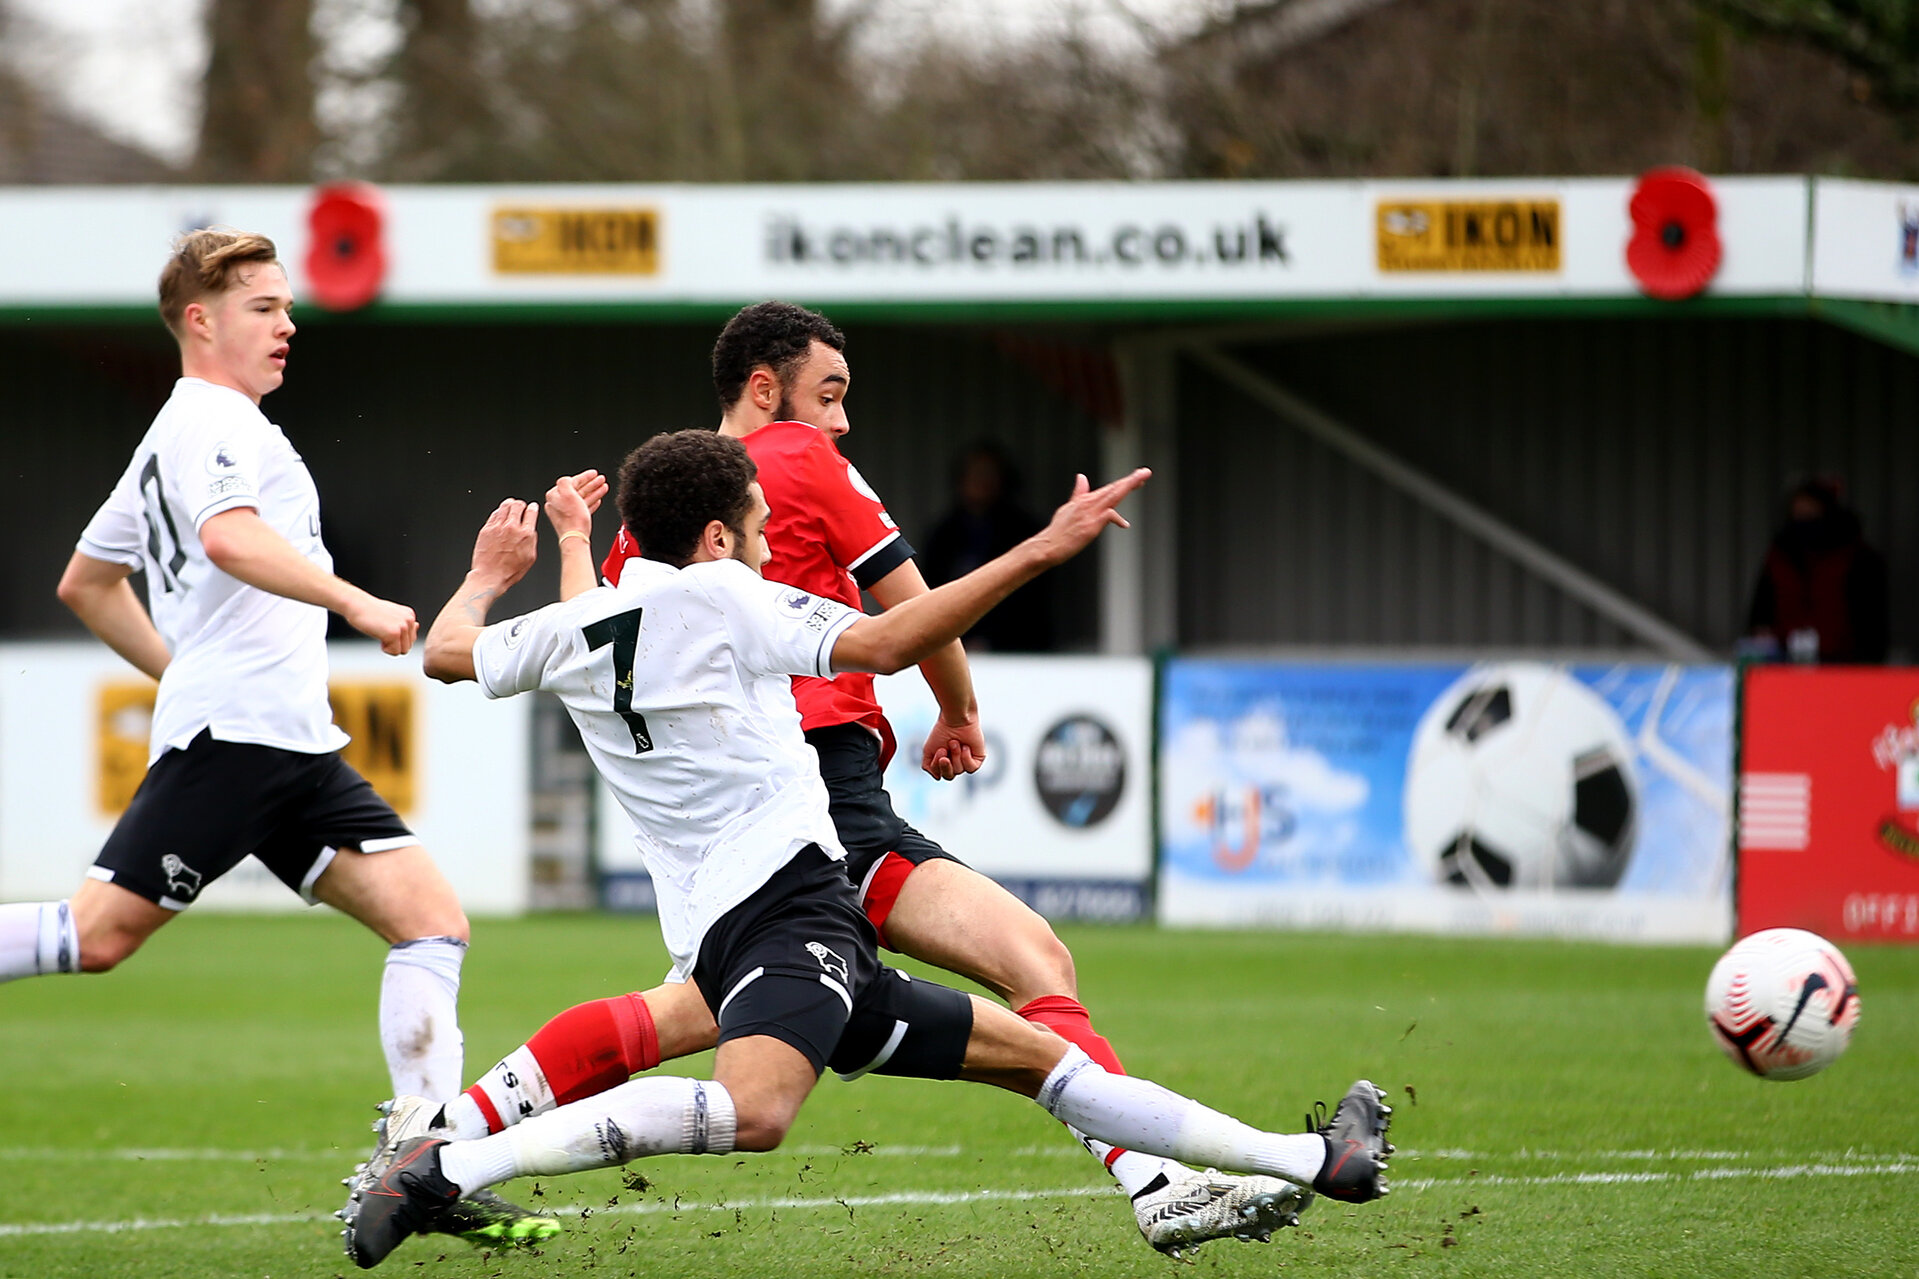 SOUTHAMPTON, ENGLAND - FEBRUARY 21: during Premier League 2 match between Southampton B Team and Derby County U23s at The Snows Stadium on February 21, 2021 in Southampton, England. (Photo by Isabelle Field/Southampton FC via Getty Images)